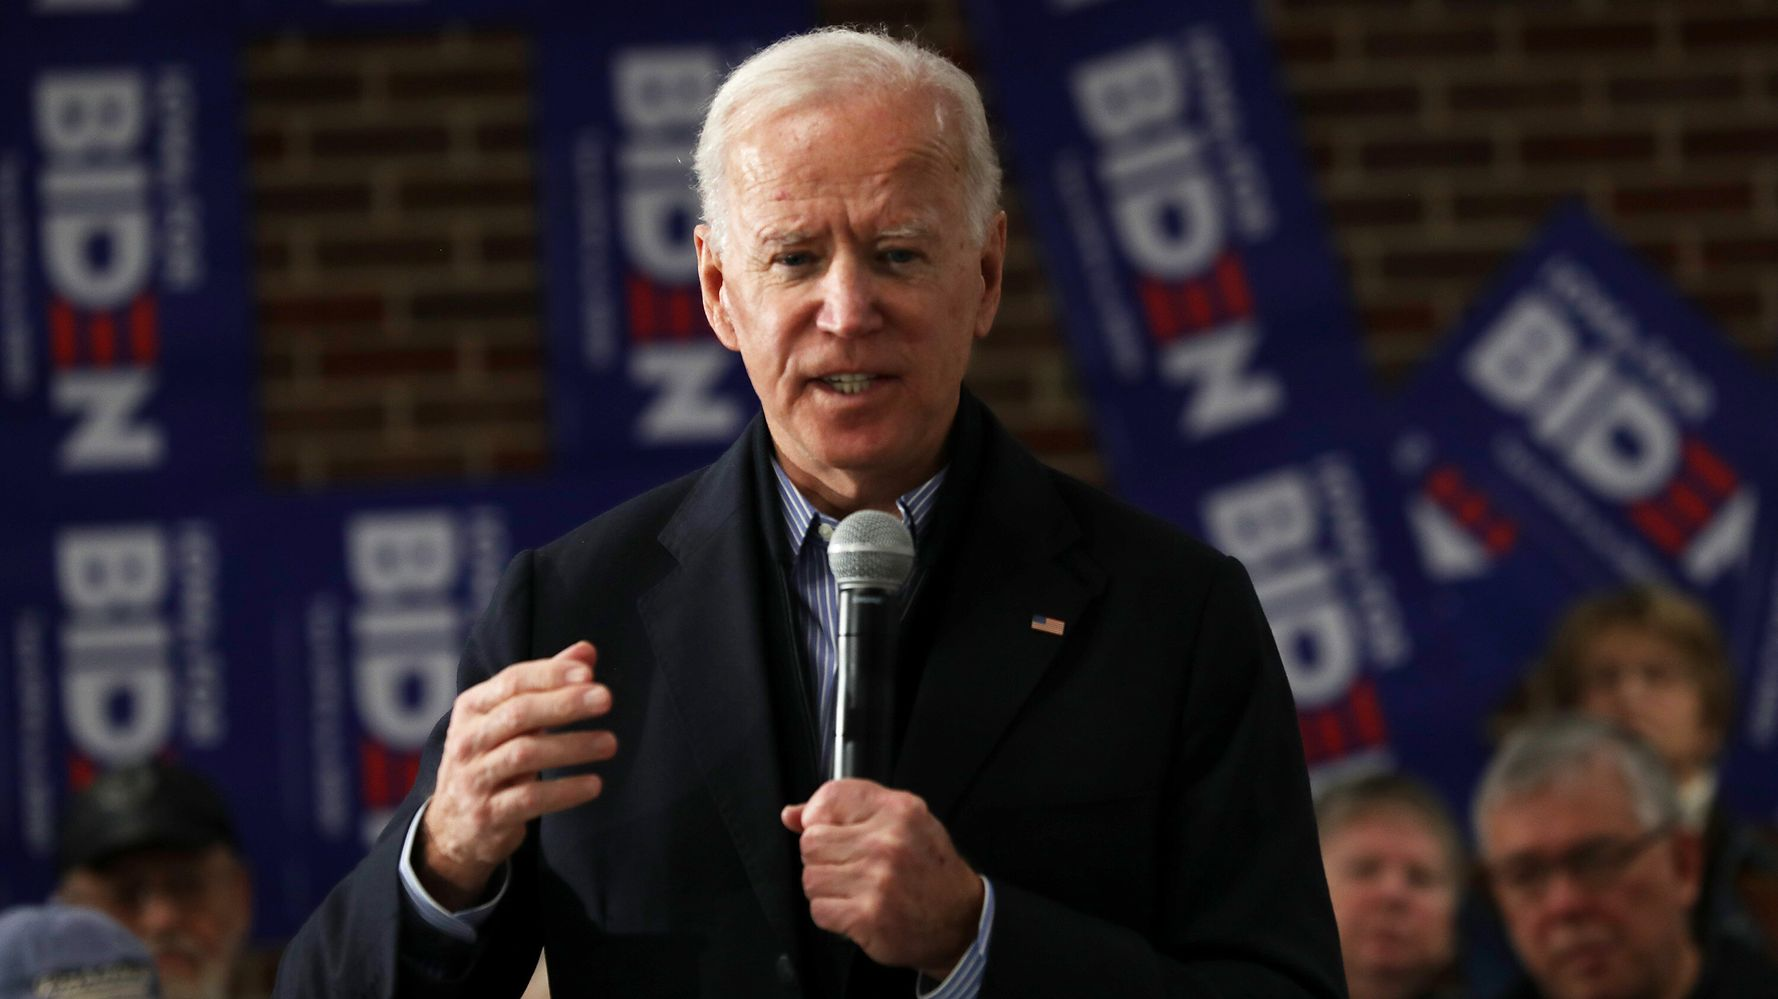 Joe Biden Doubles Down On A Racist Myth About Black Parents